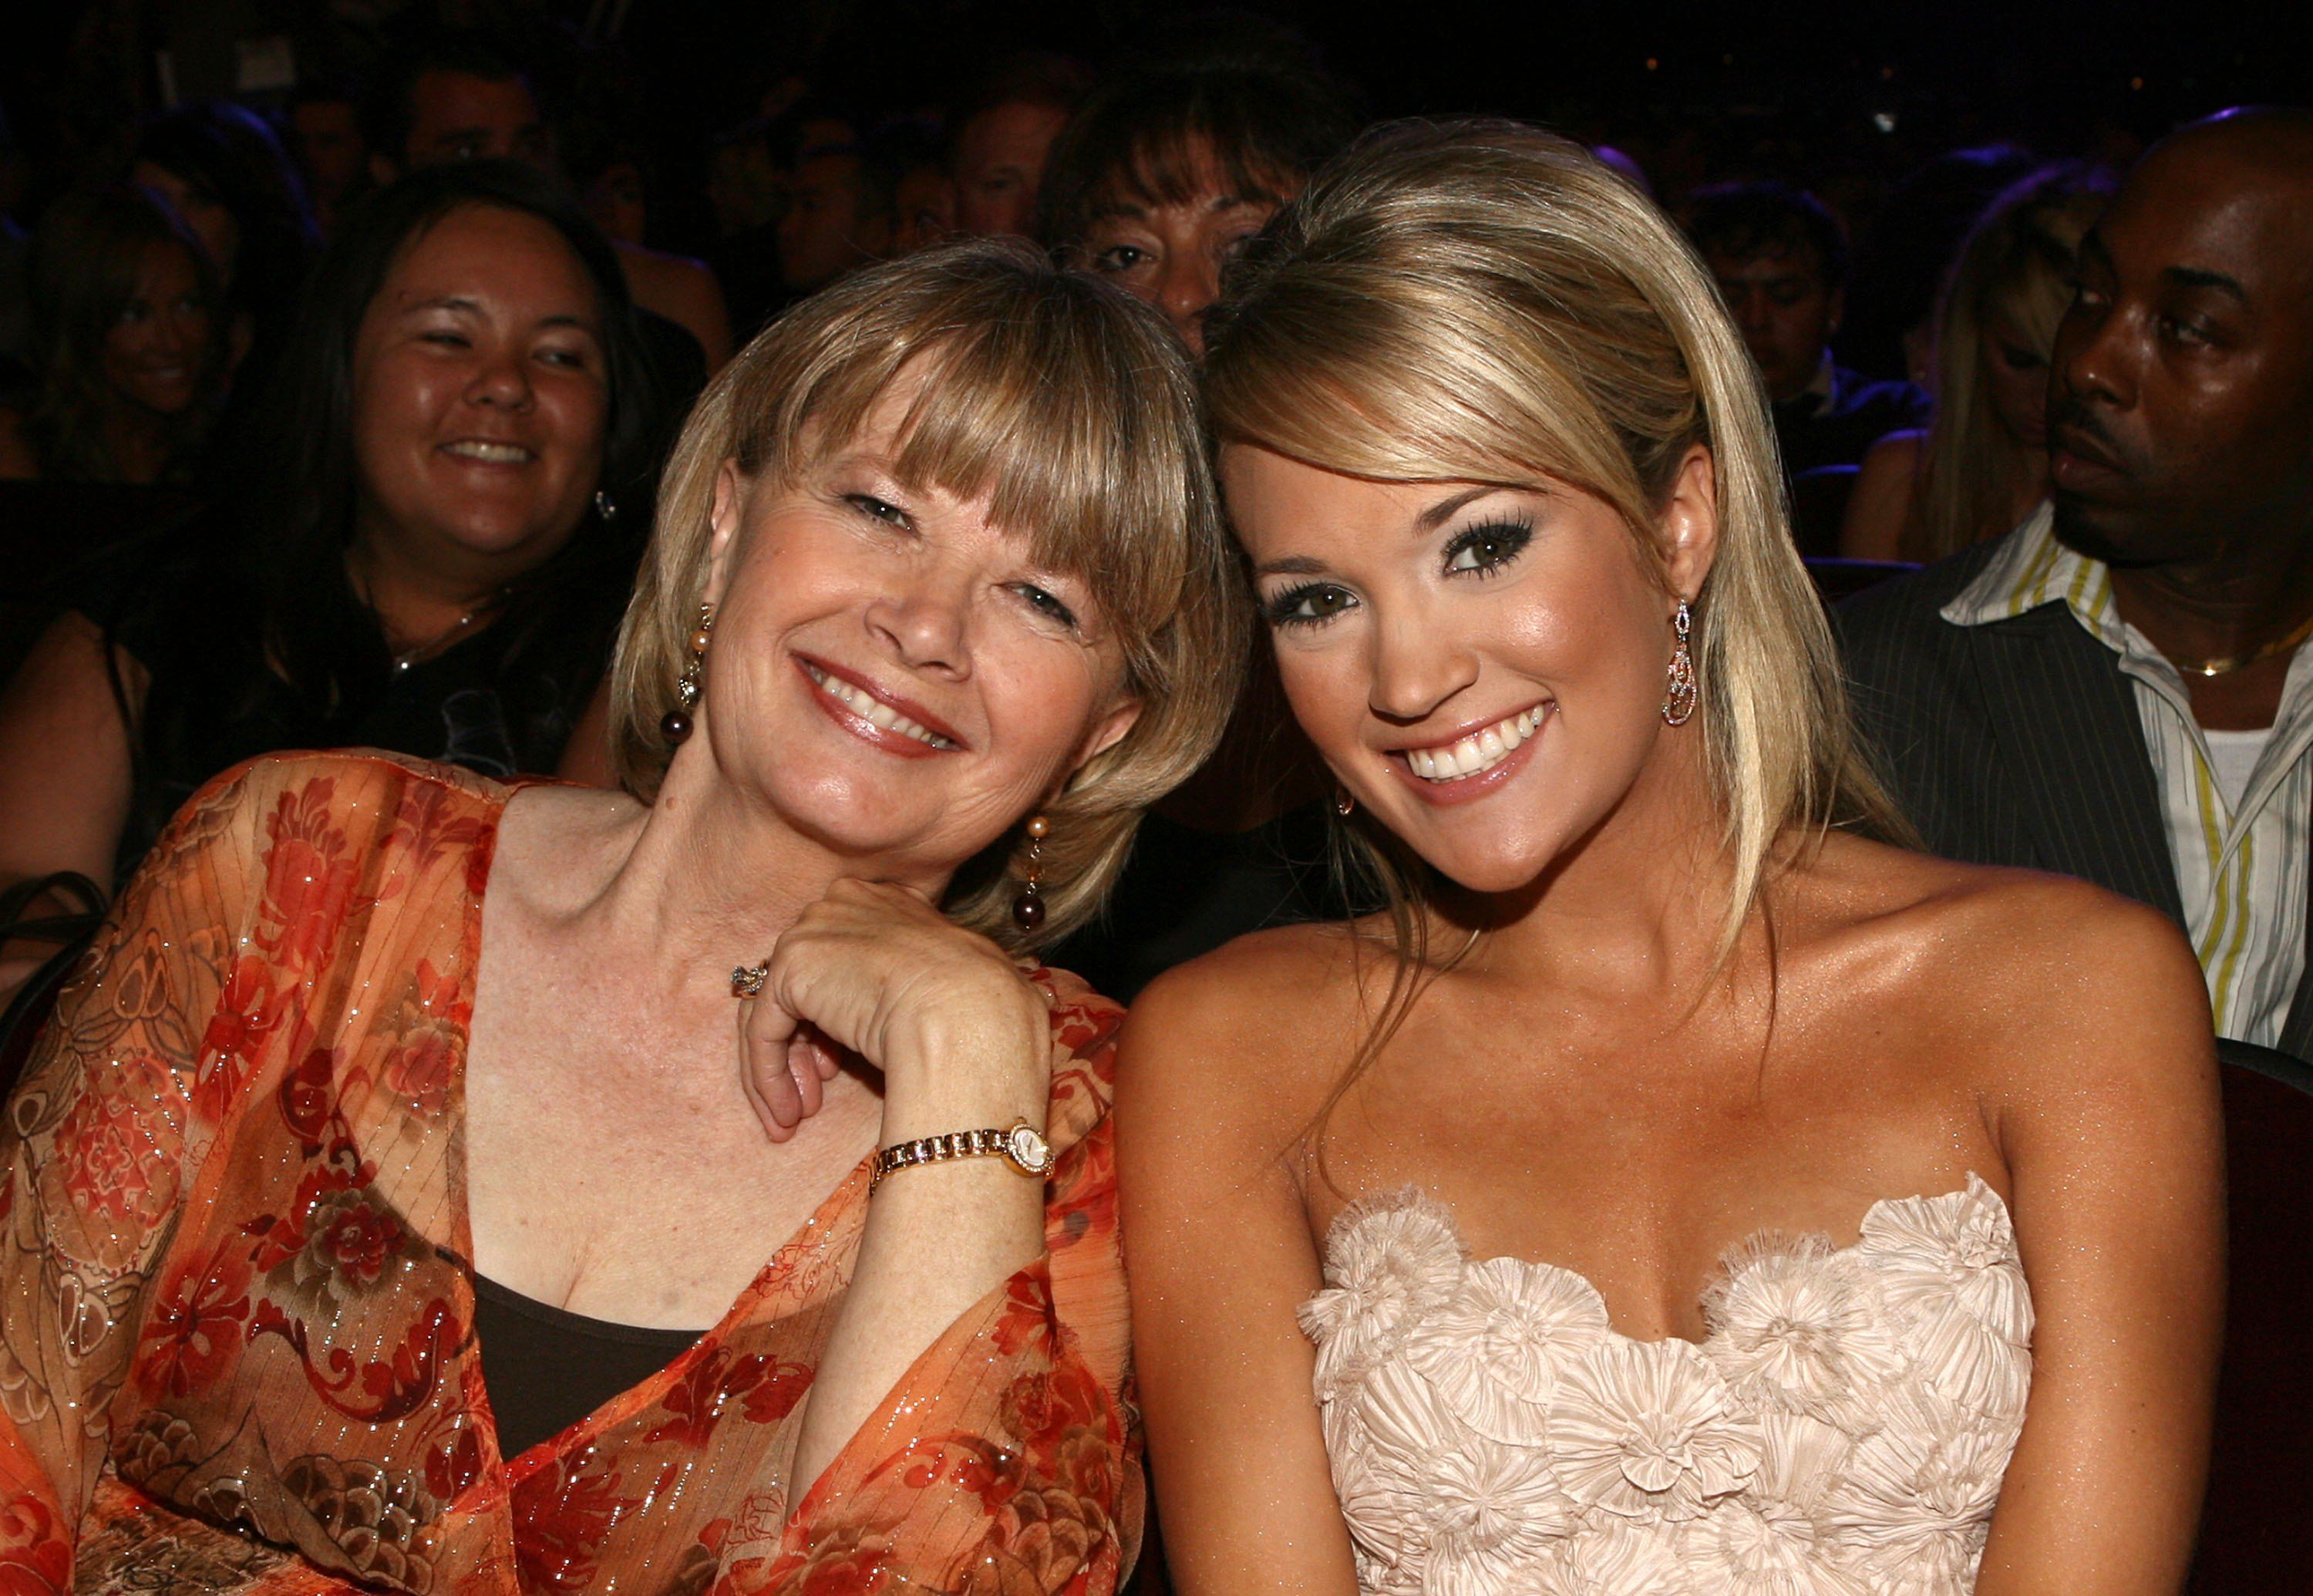 Carrie Underwood and her at the 2006 American Music Awards in Los Angeles | Source: Getty Images